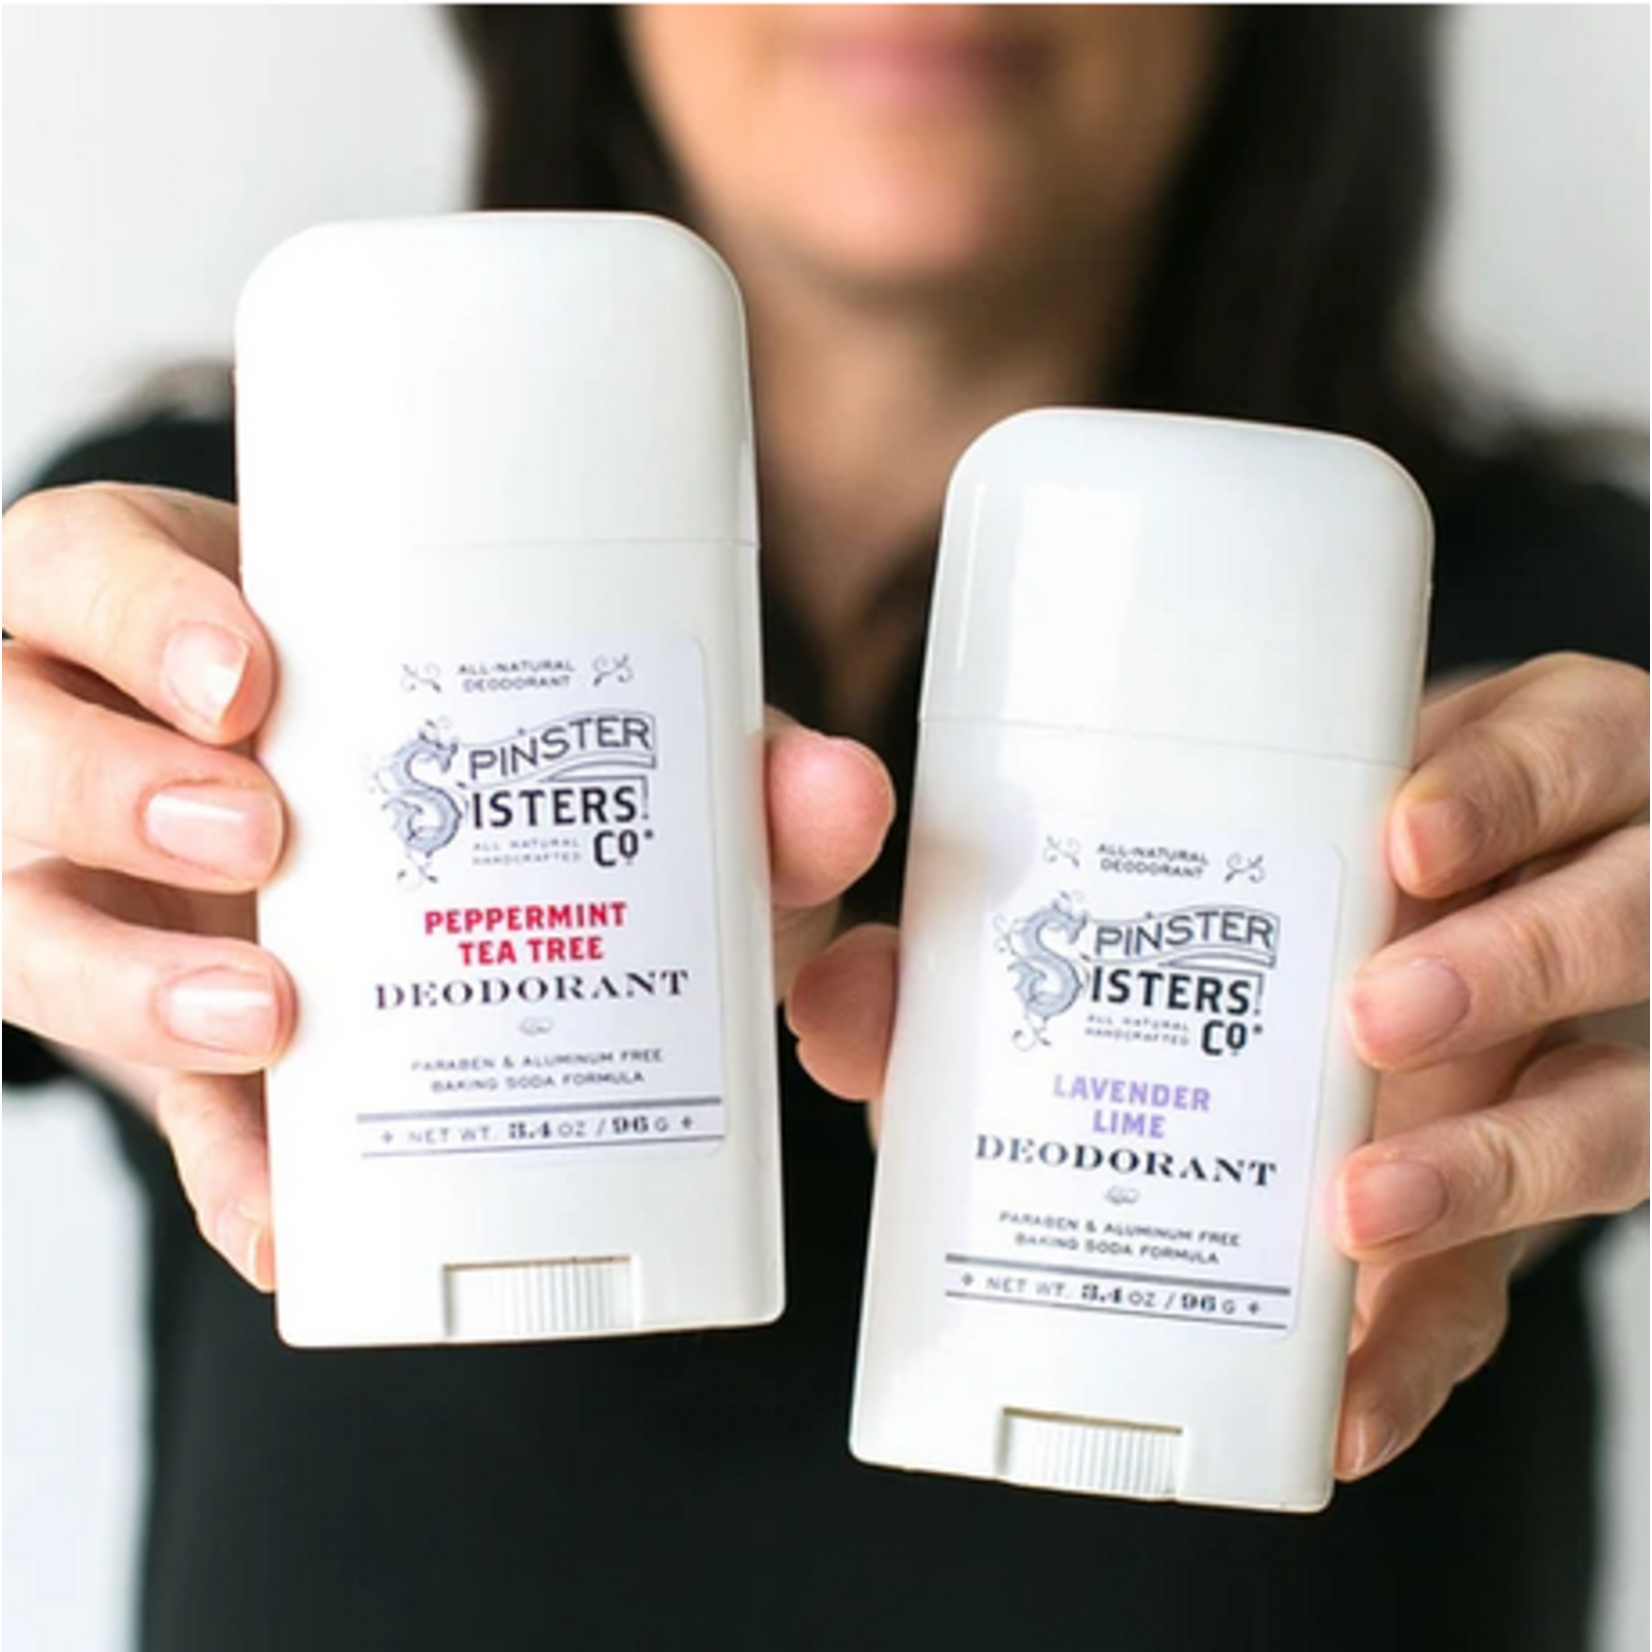 Spinster Sisters Co. SS Co. Deodorant